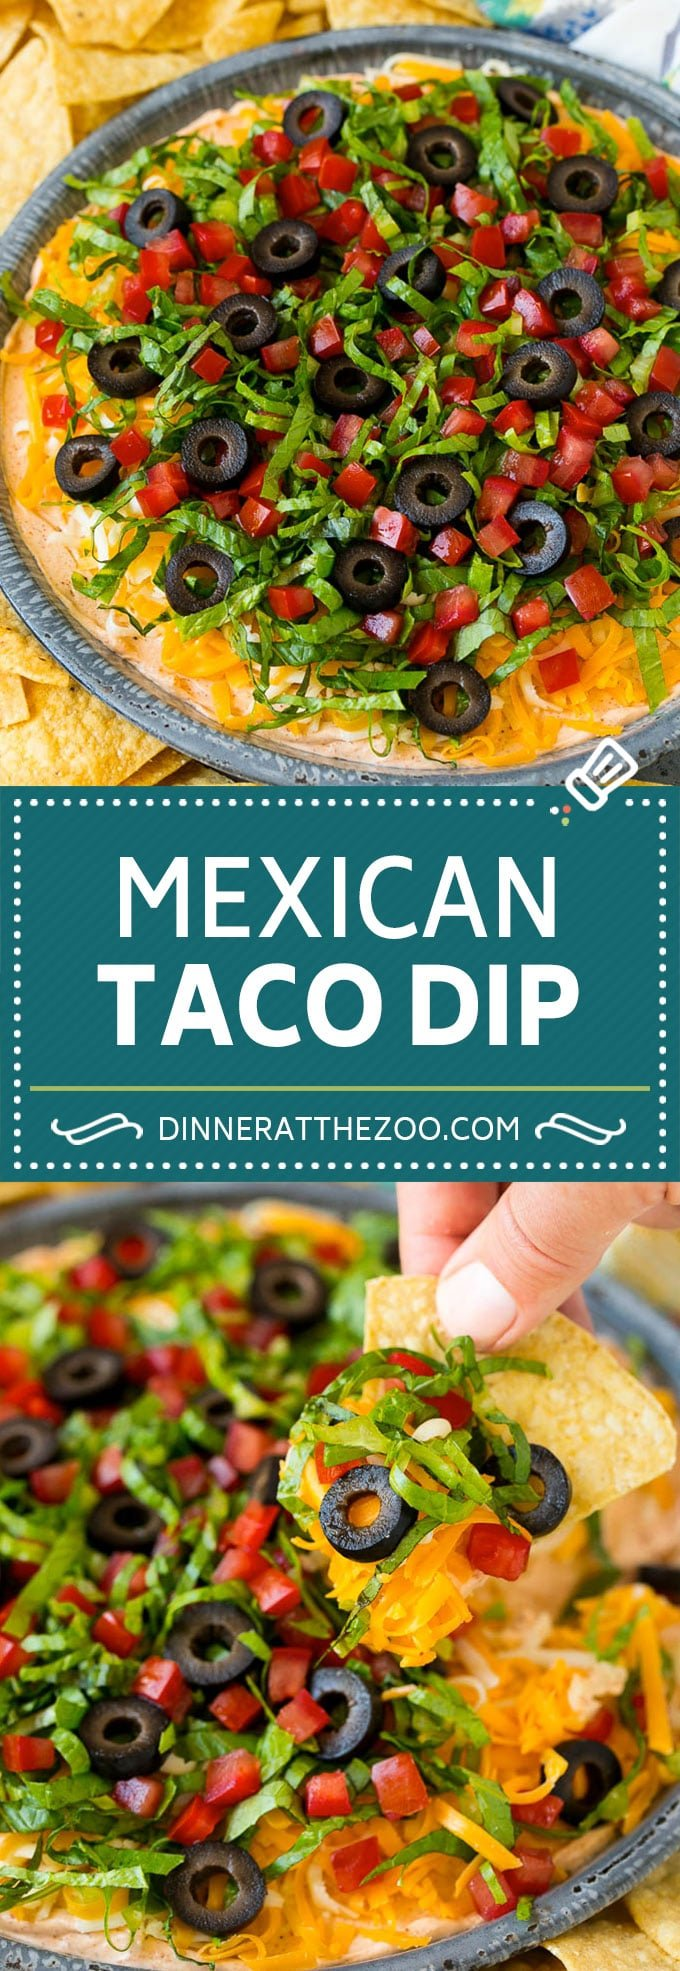 Taco Dip Recipe Dinner At The Zoo